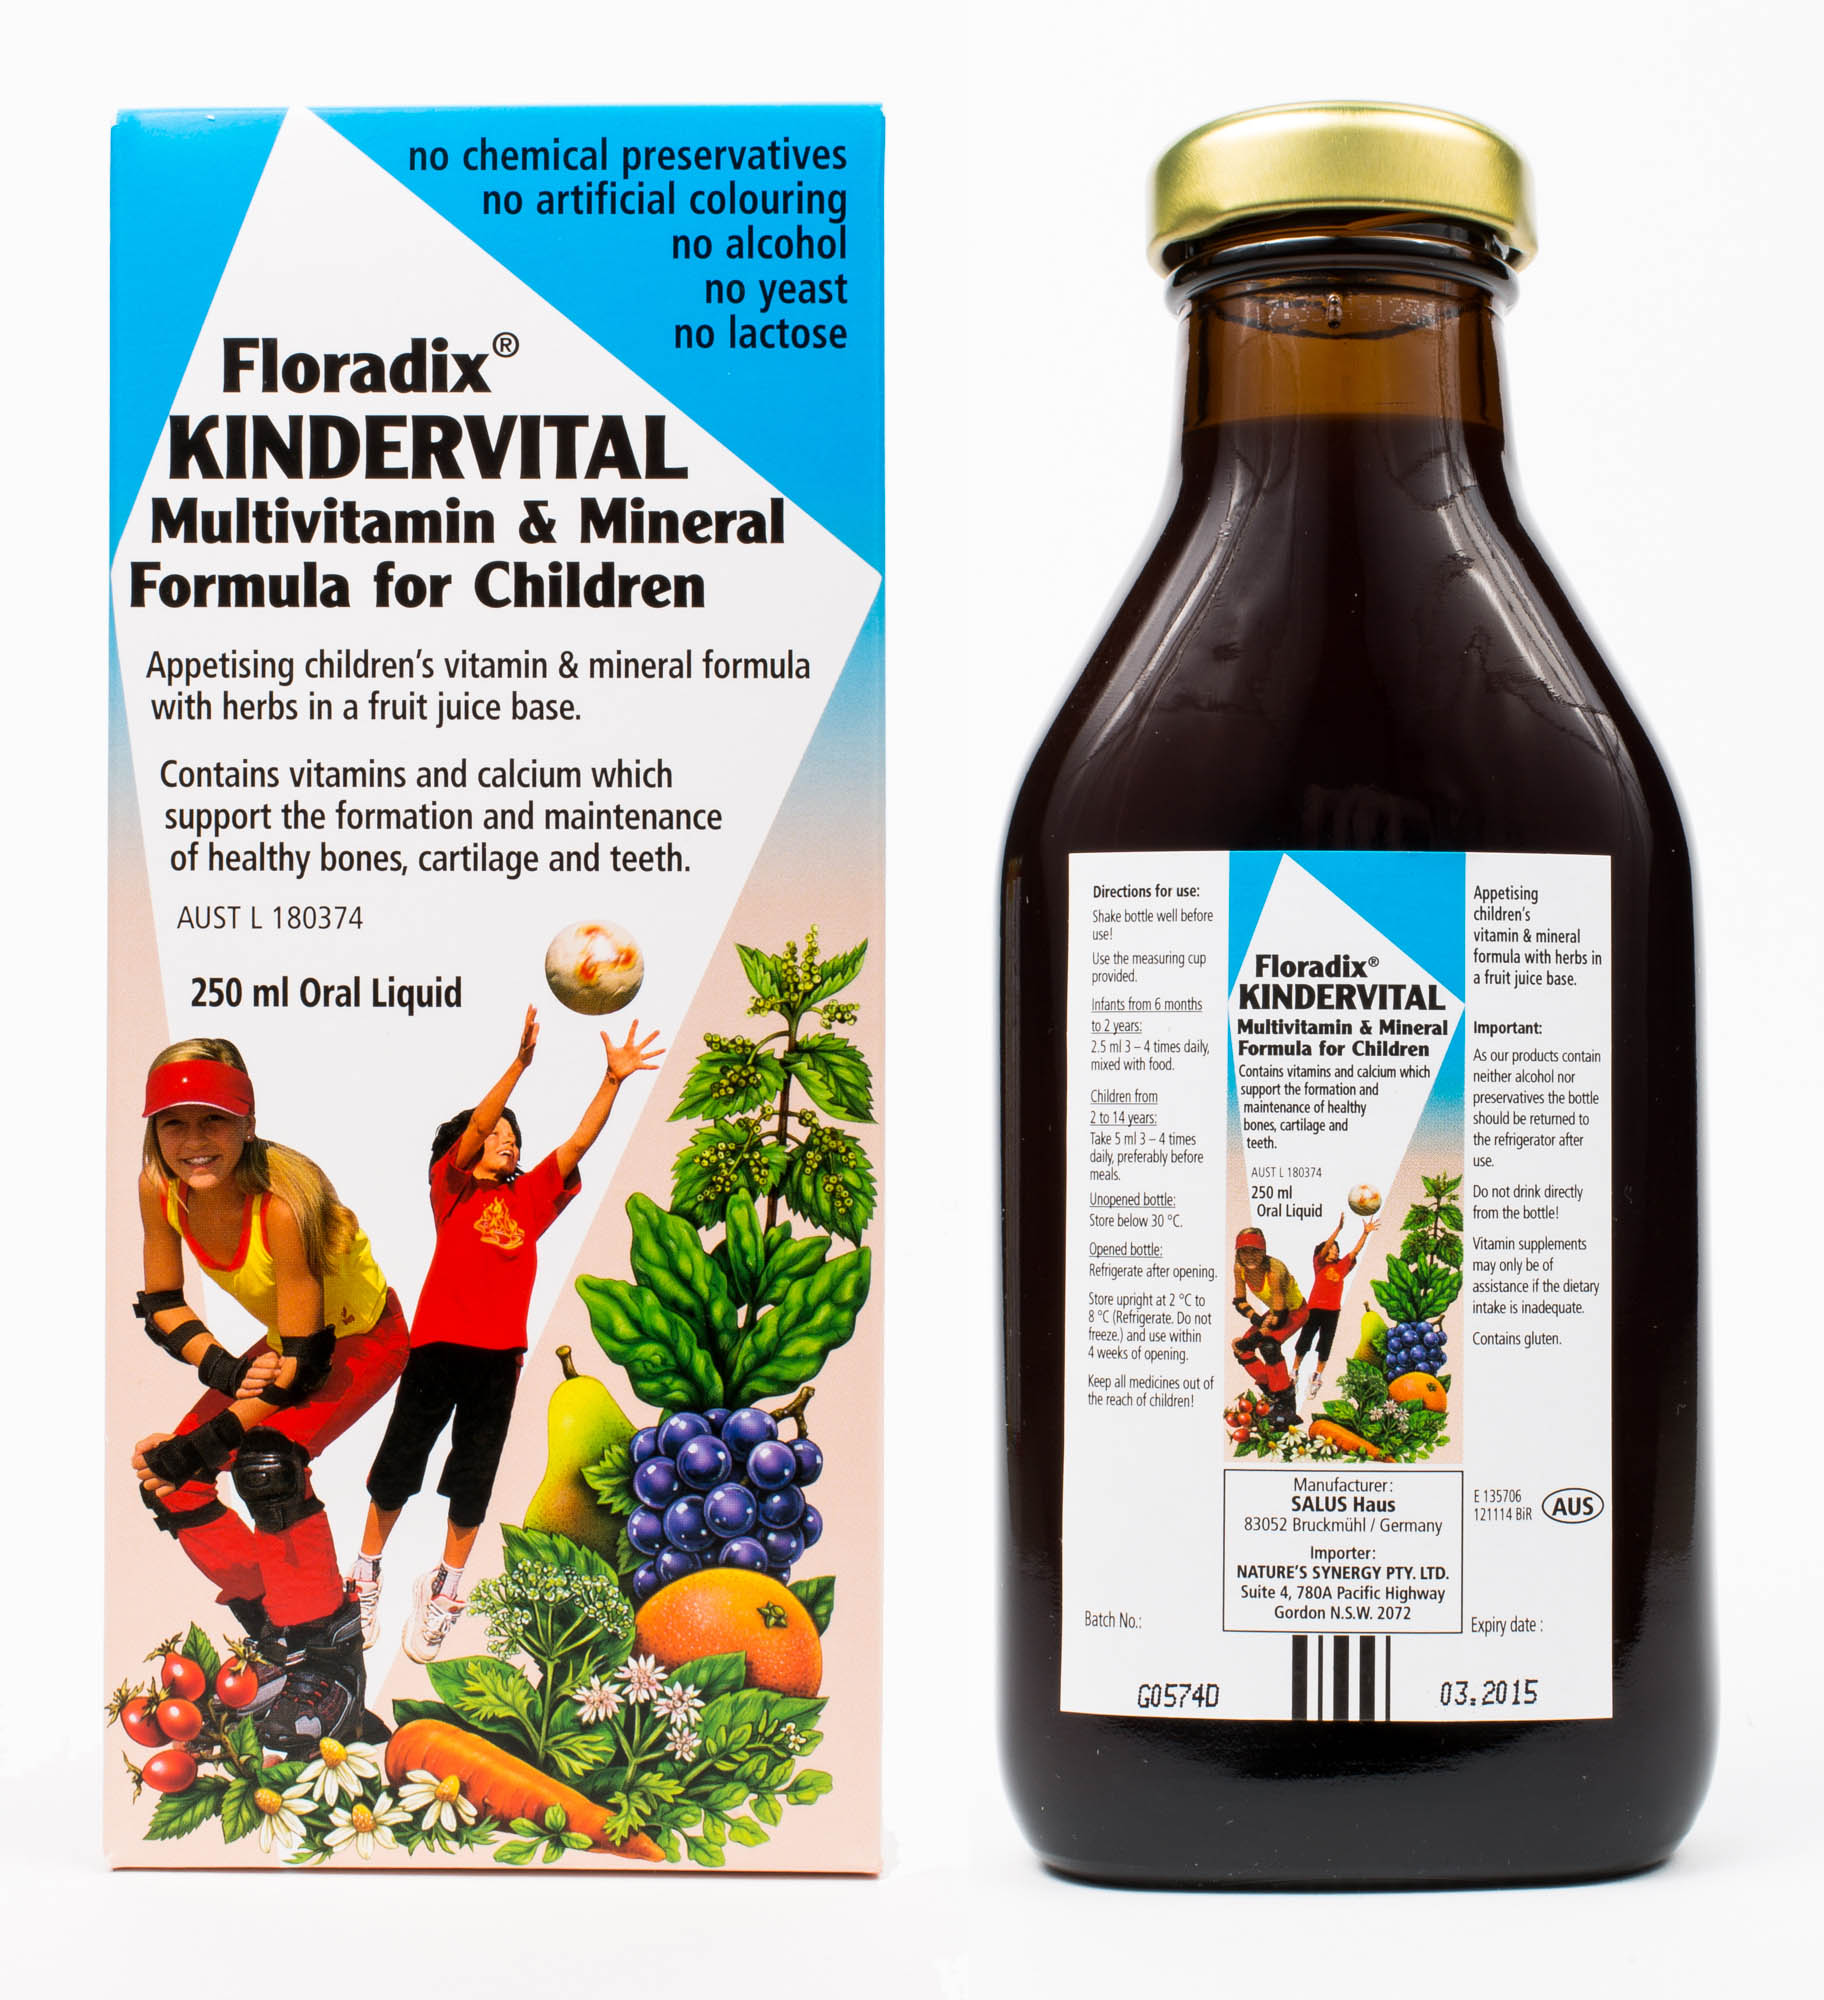 floradix kindervital www.motherbynature.com.au multivitamin drink